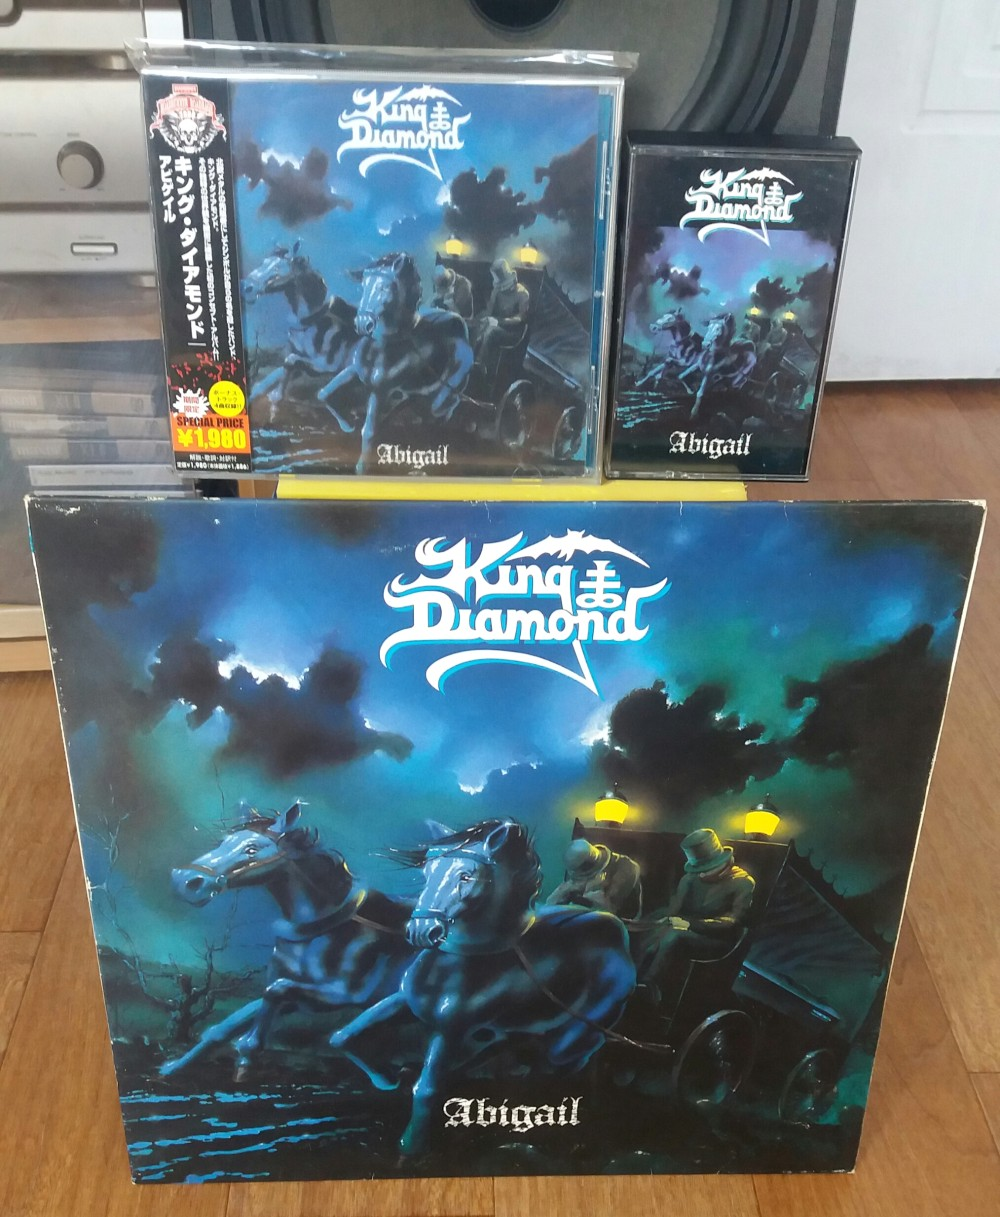 King Diamond - Abigail Vinyl, CD, Cassette Photo